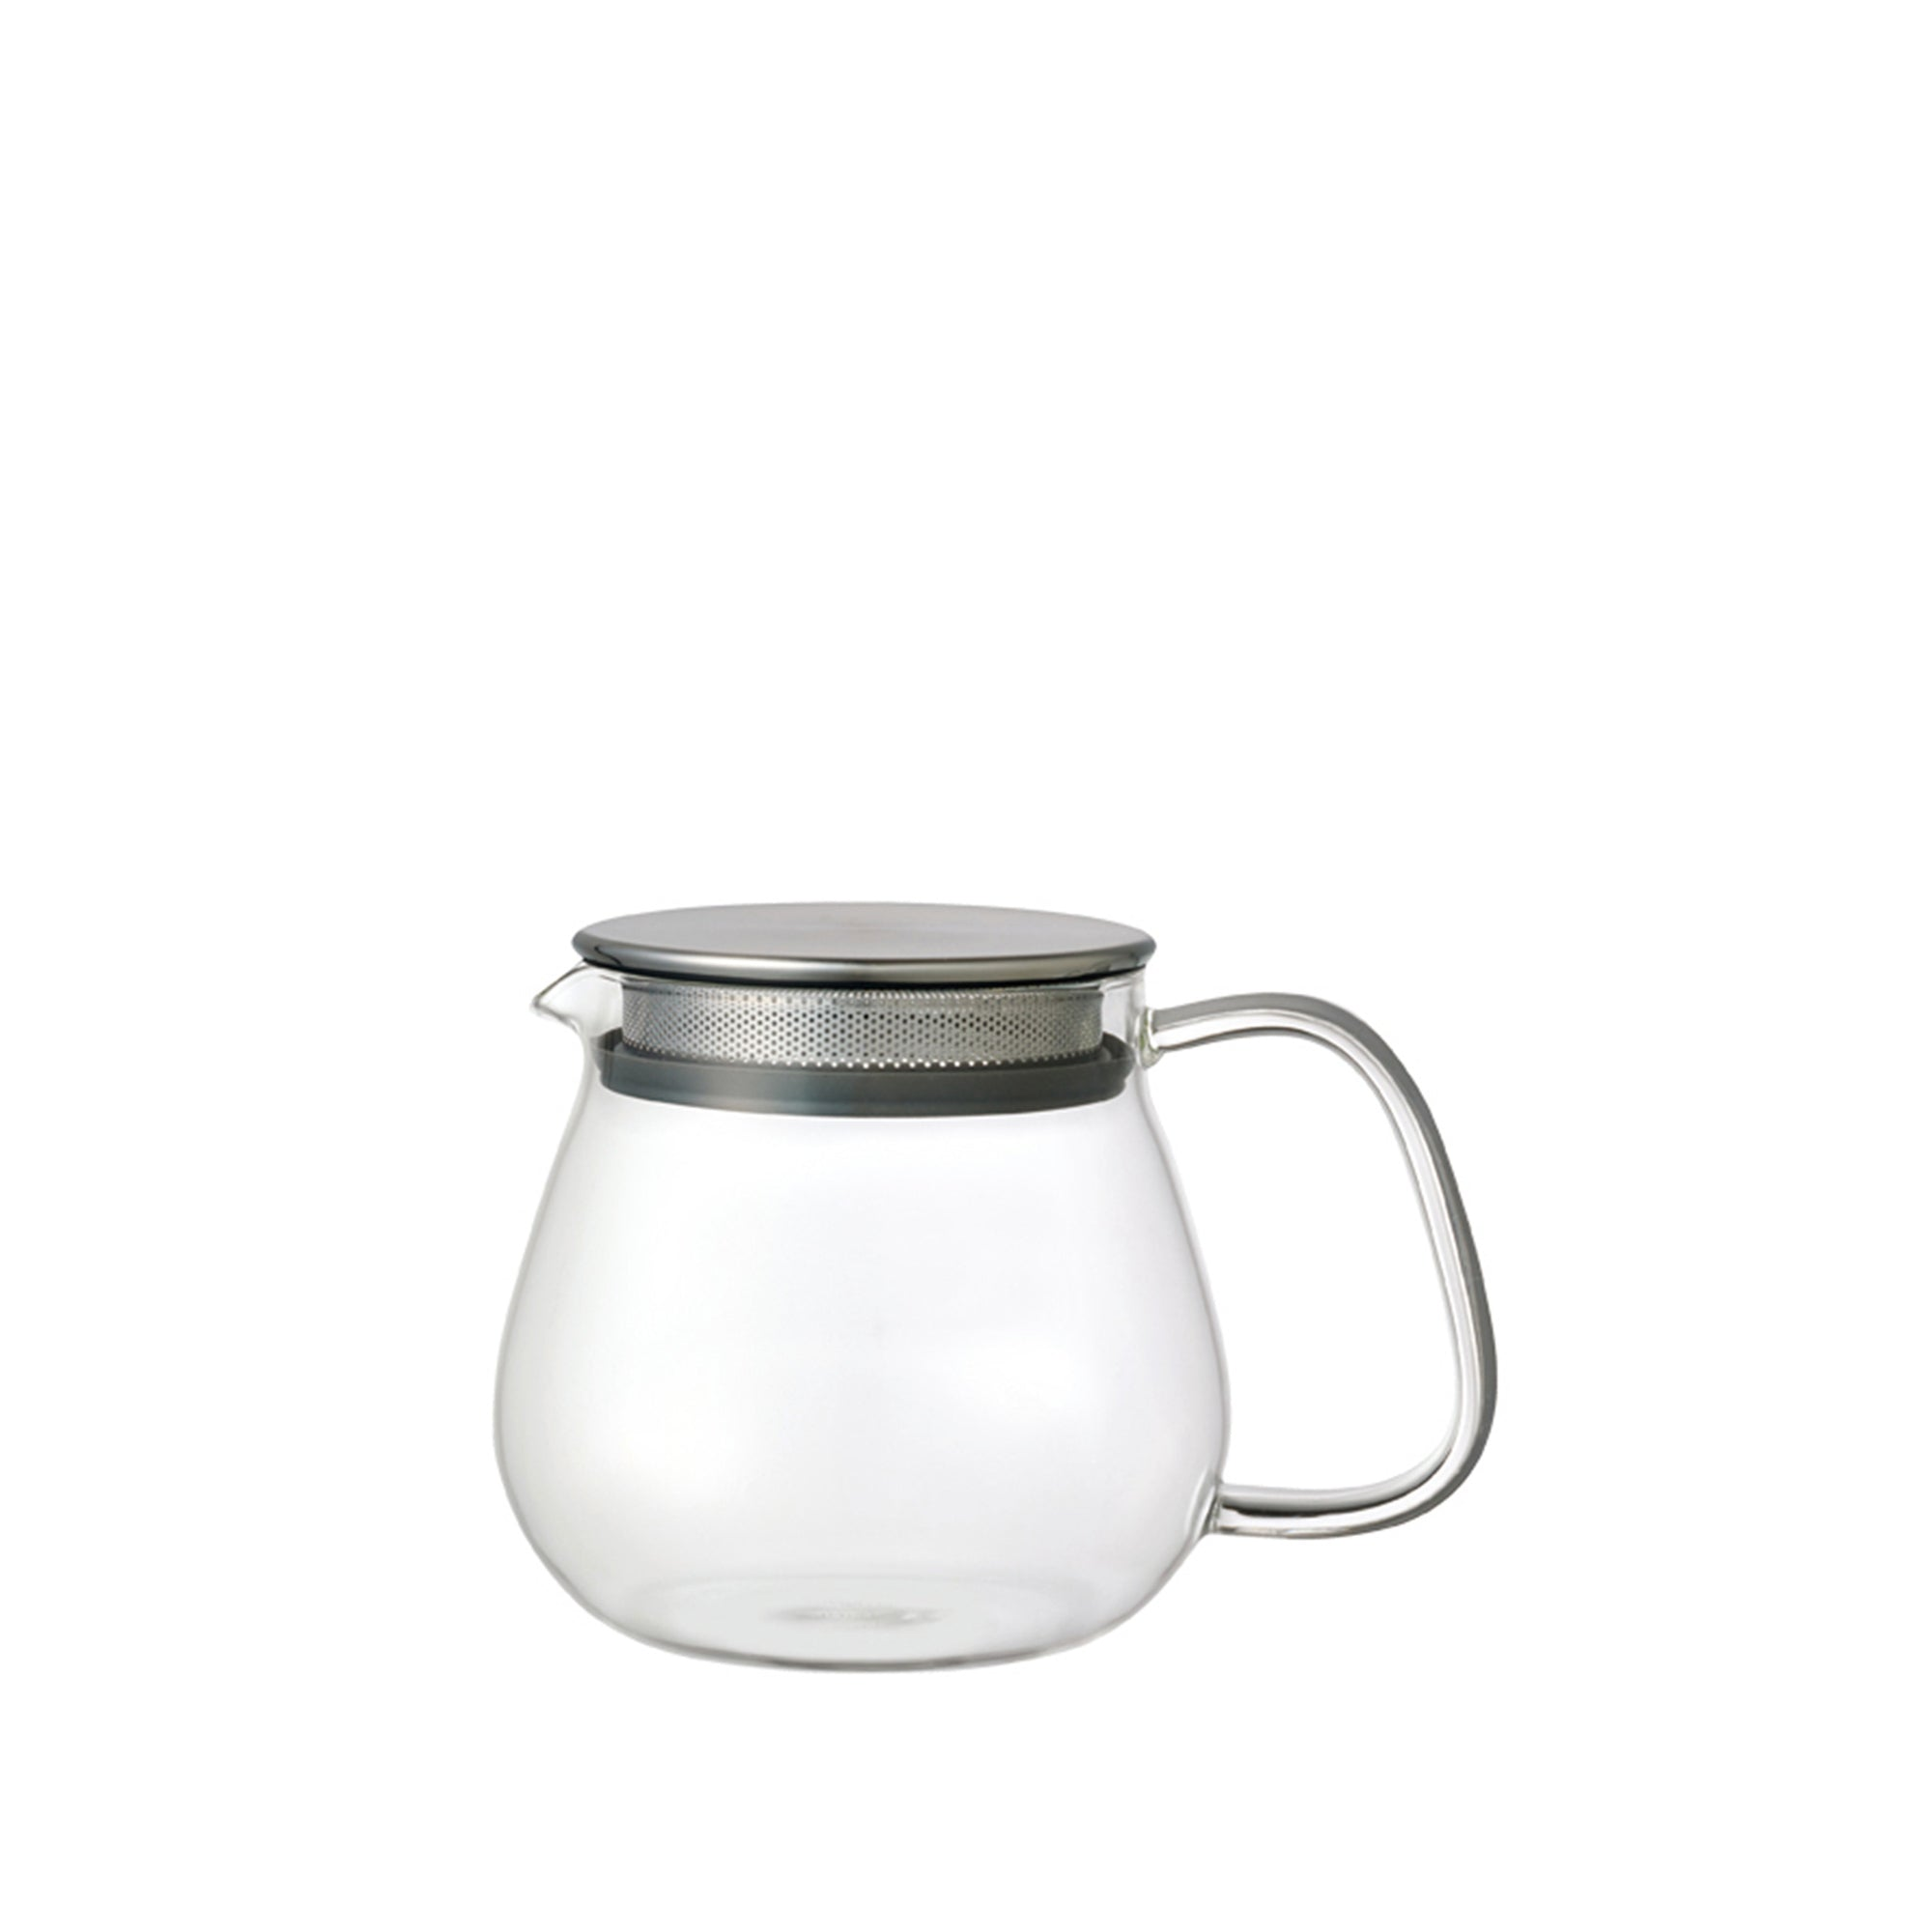 Tea Server Unitea One Touch 460ml - Kinto - Espresso Gear